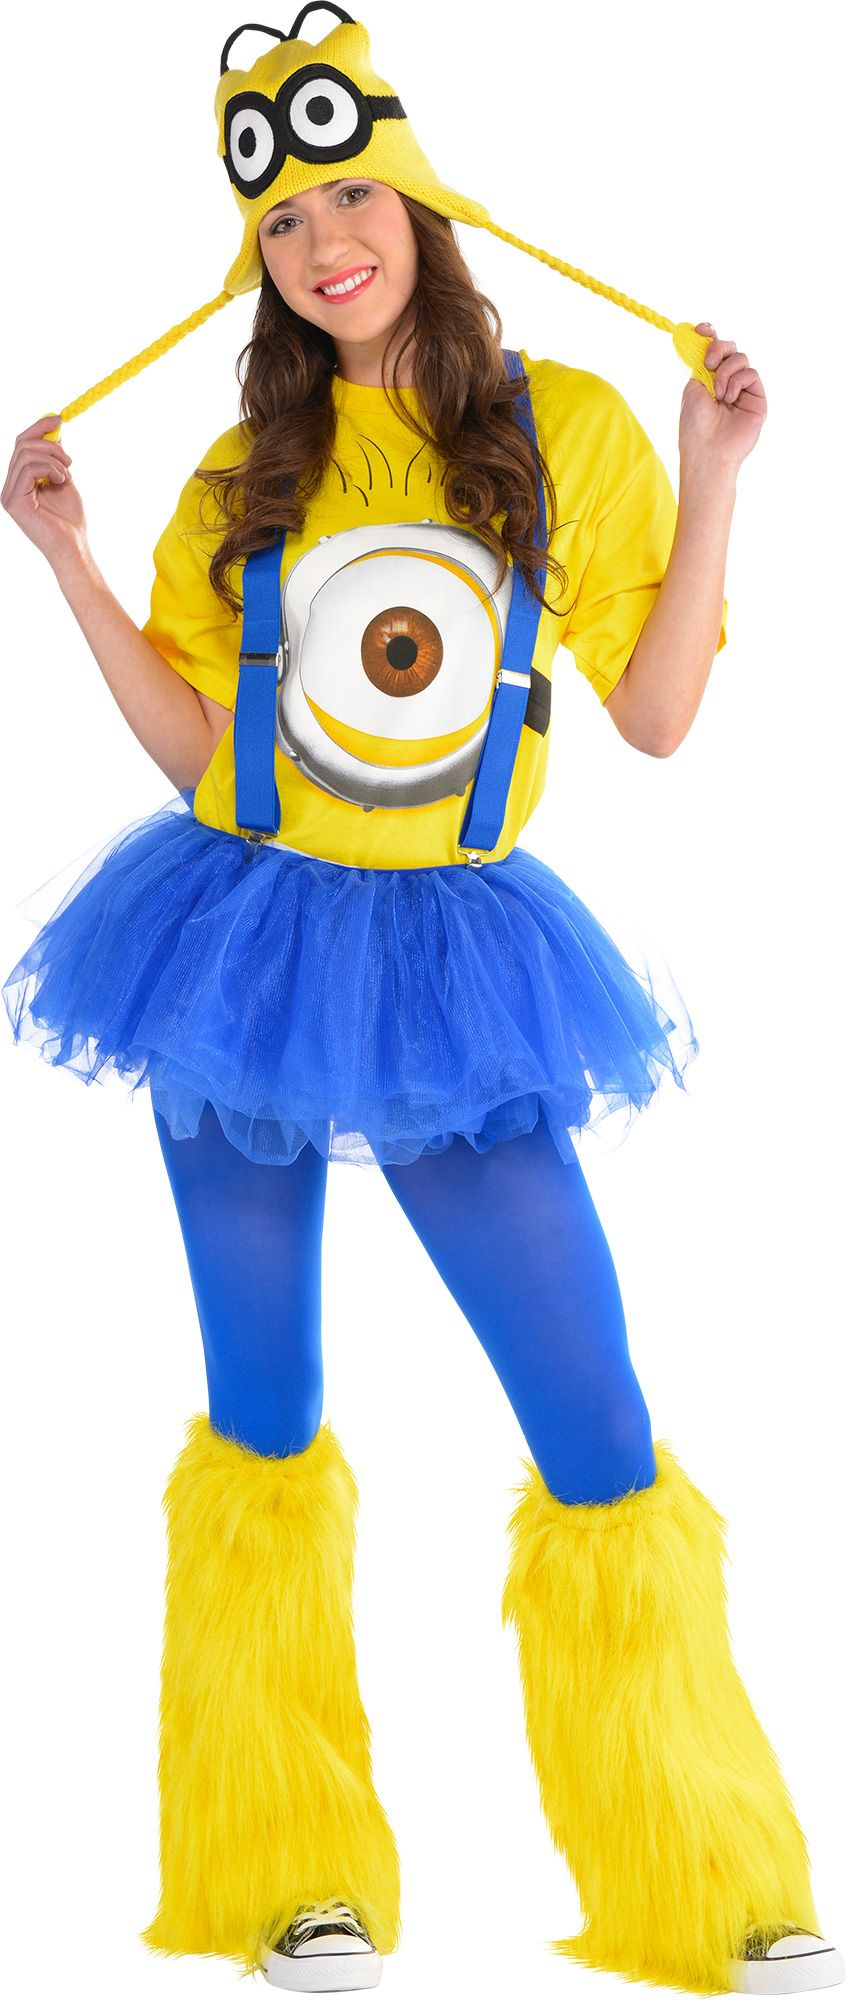 Find the perfect Minion costume for Halloween and the ultimate excuse to cause a little trouble. Get Minion costumes and accessories for the whole family at a great price. hamlergoodchain.ga (We even have the purple mutant Minion!) They feature realistic prints of the characters and are guaranteed to pass Gru's closest inspection.